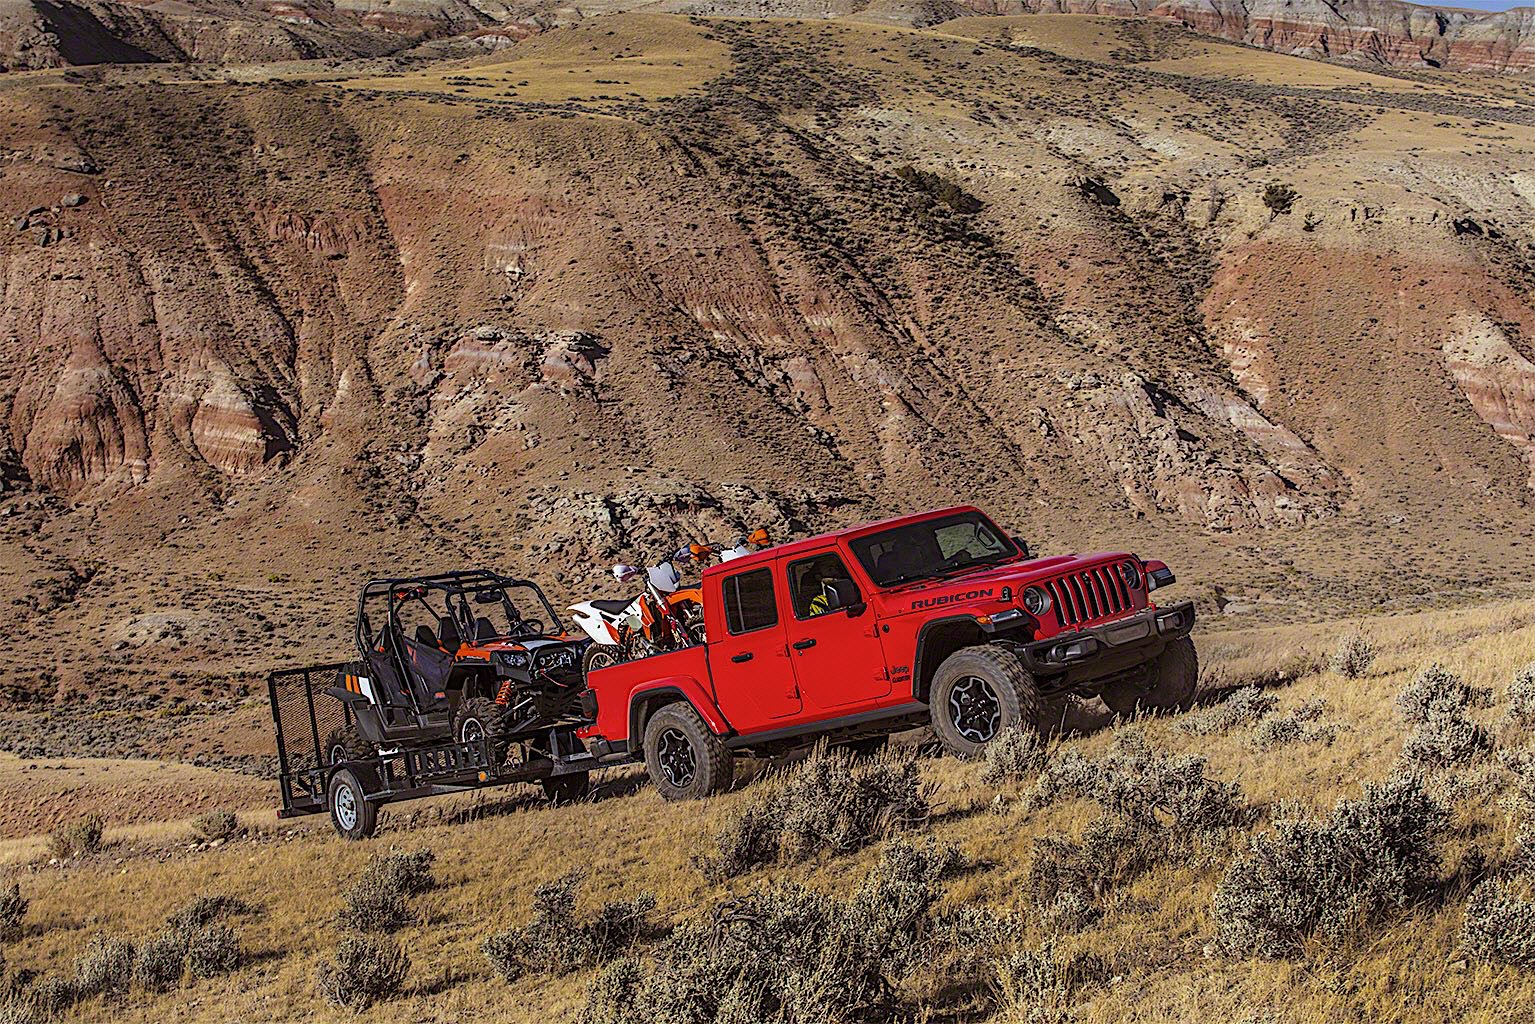 2020 Jeep Gladiator Pickup Truck: Everything You Need to ...